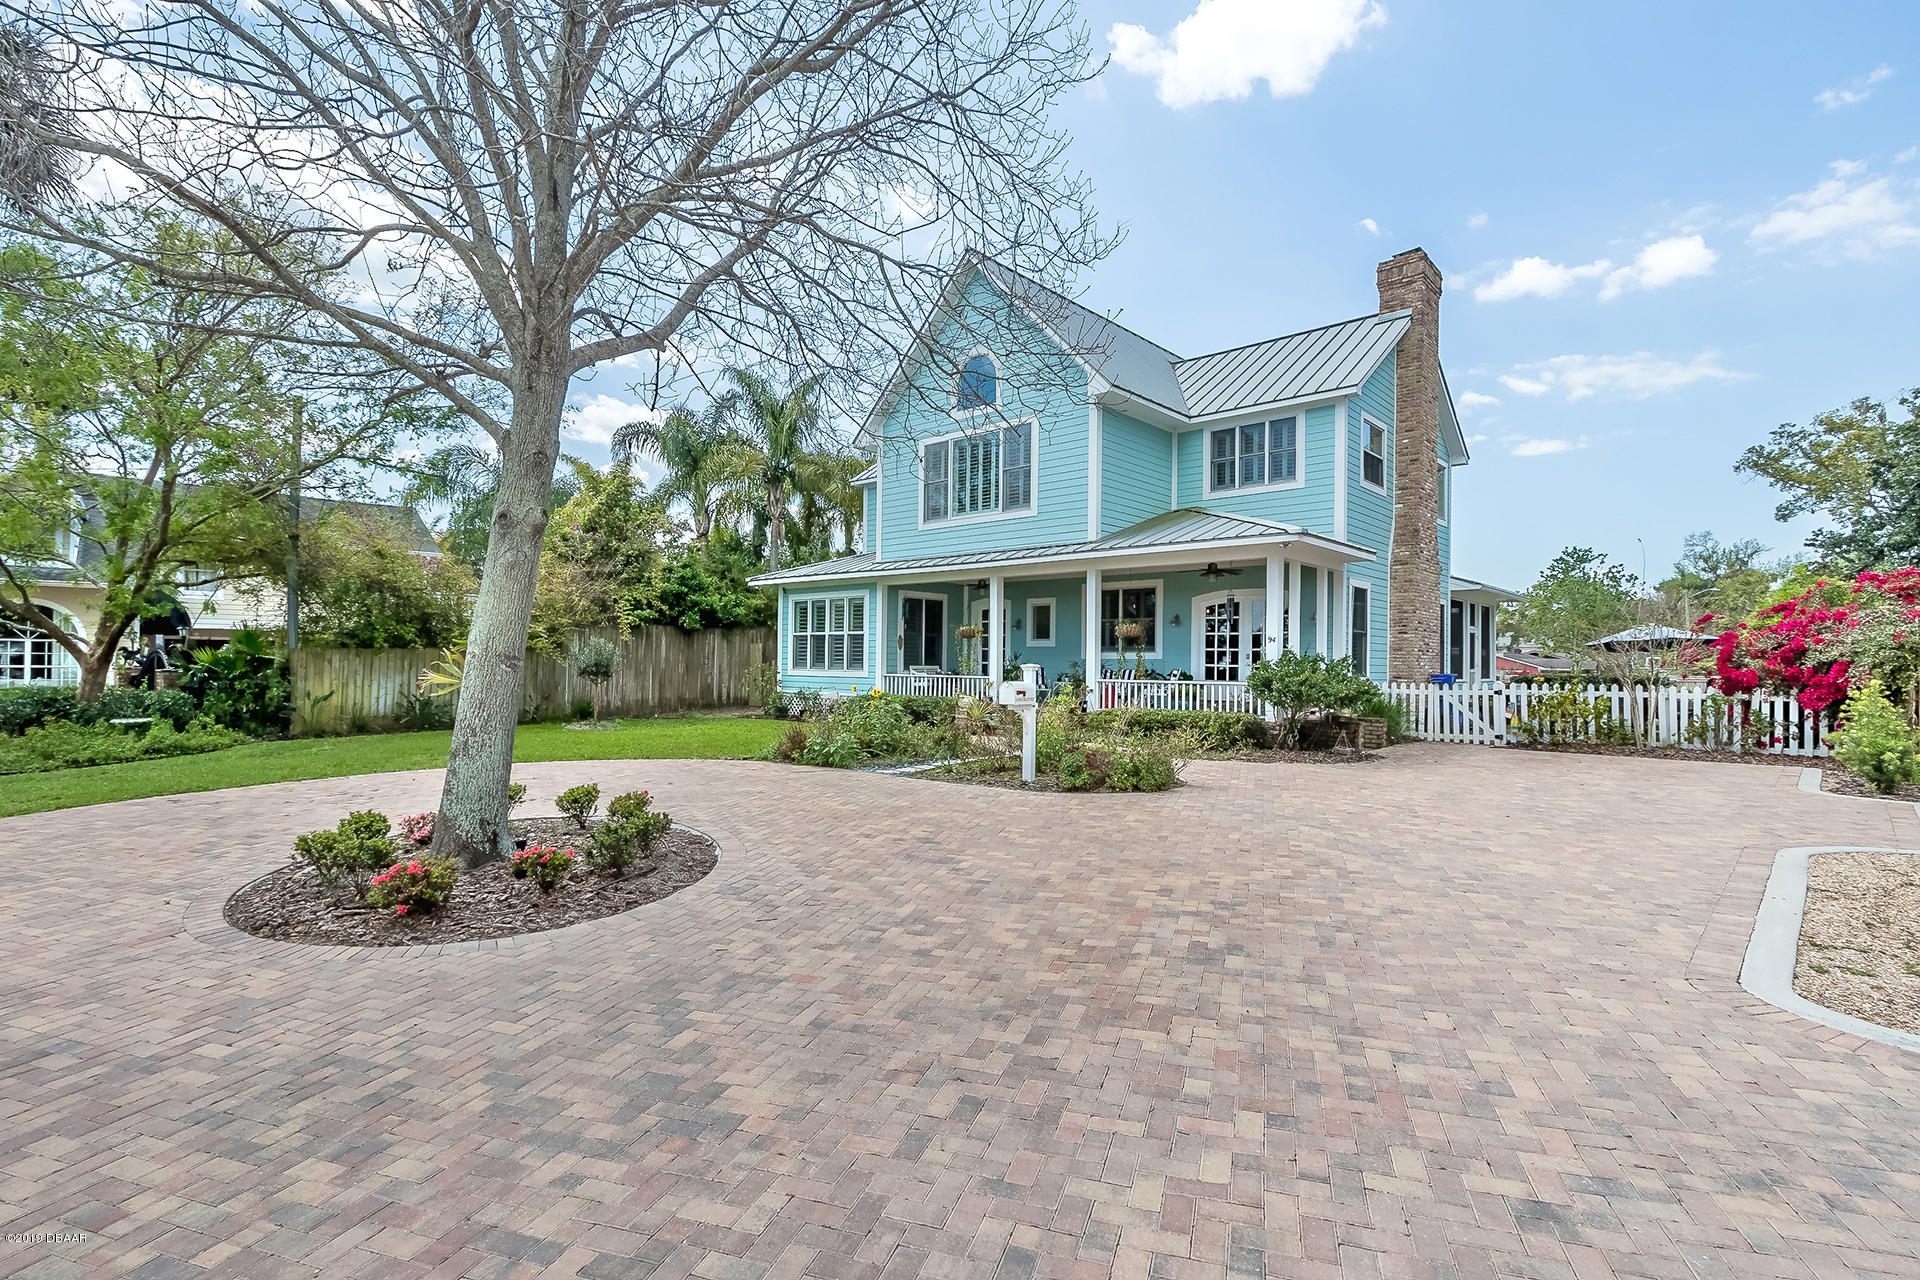 94 N Beach Street, Ormond Beach, Florida